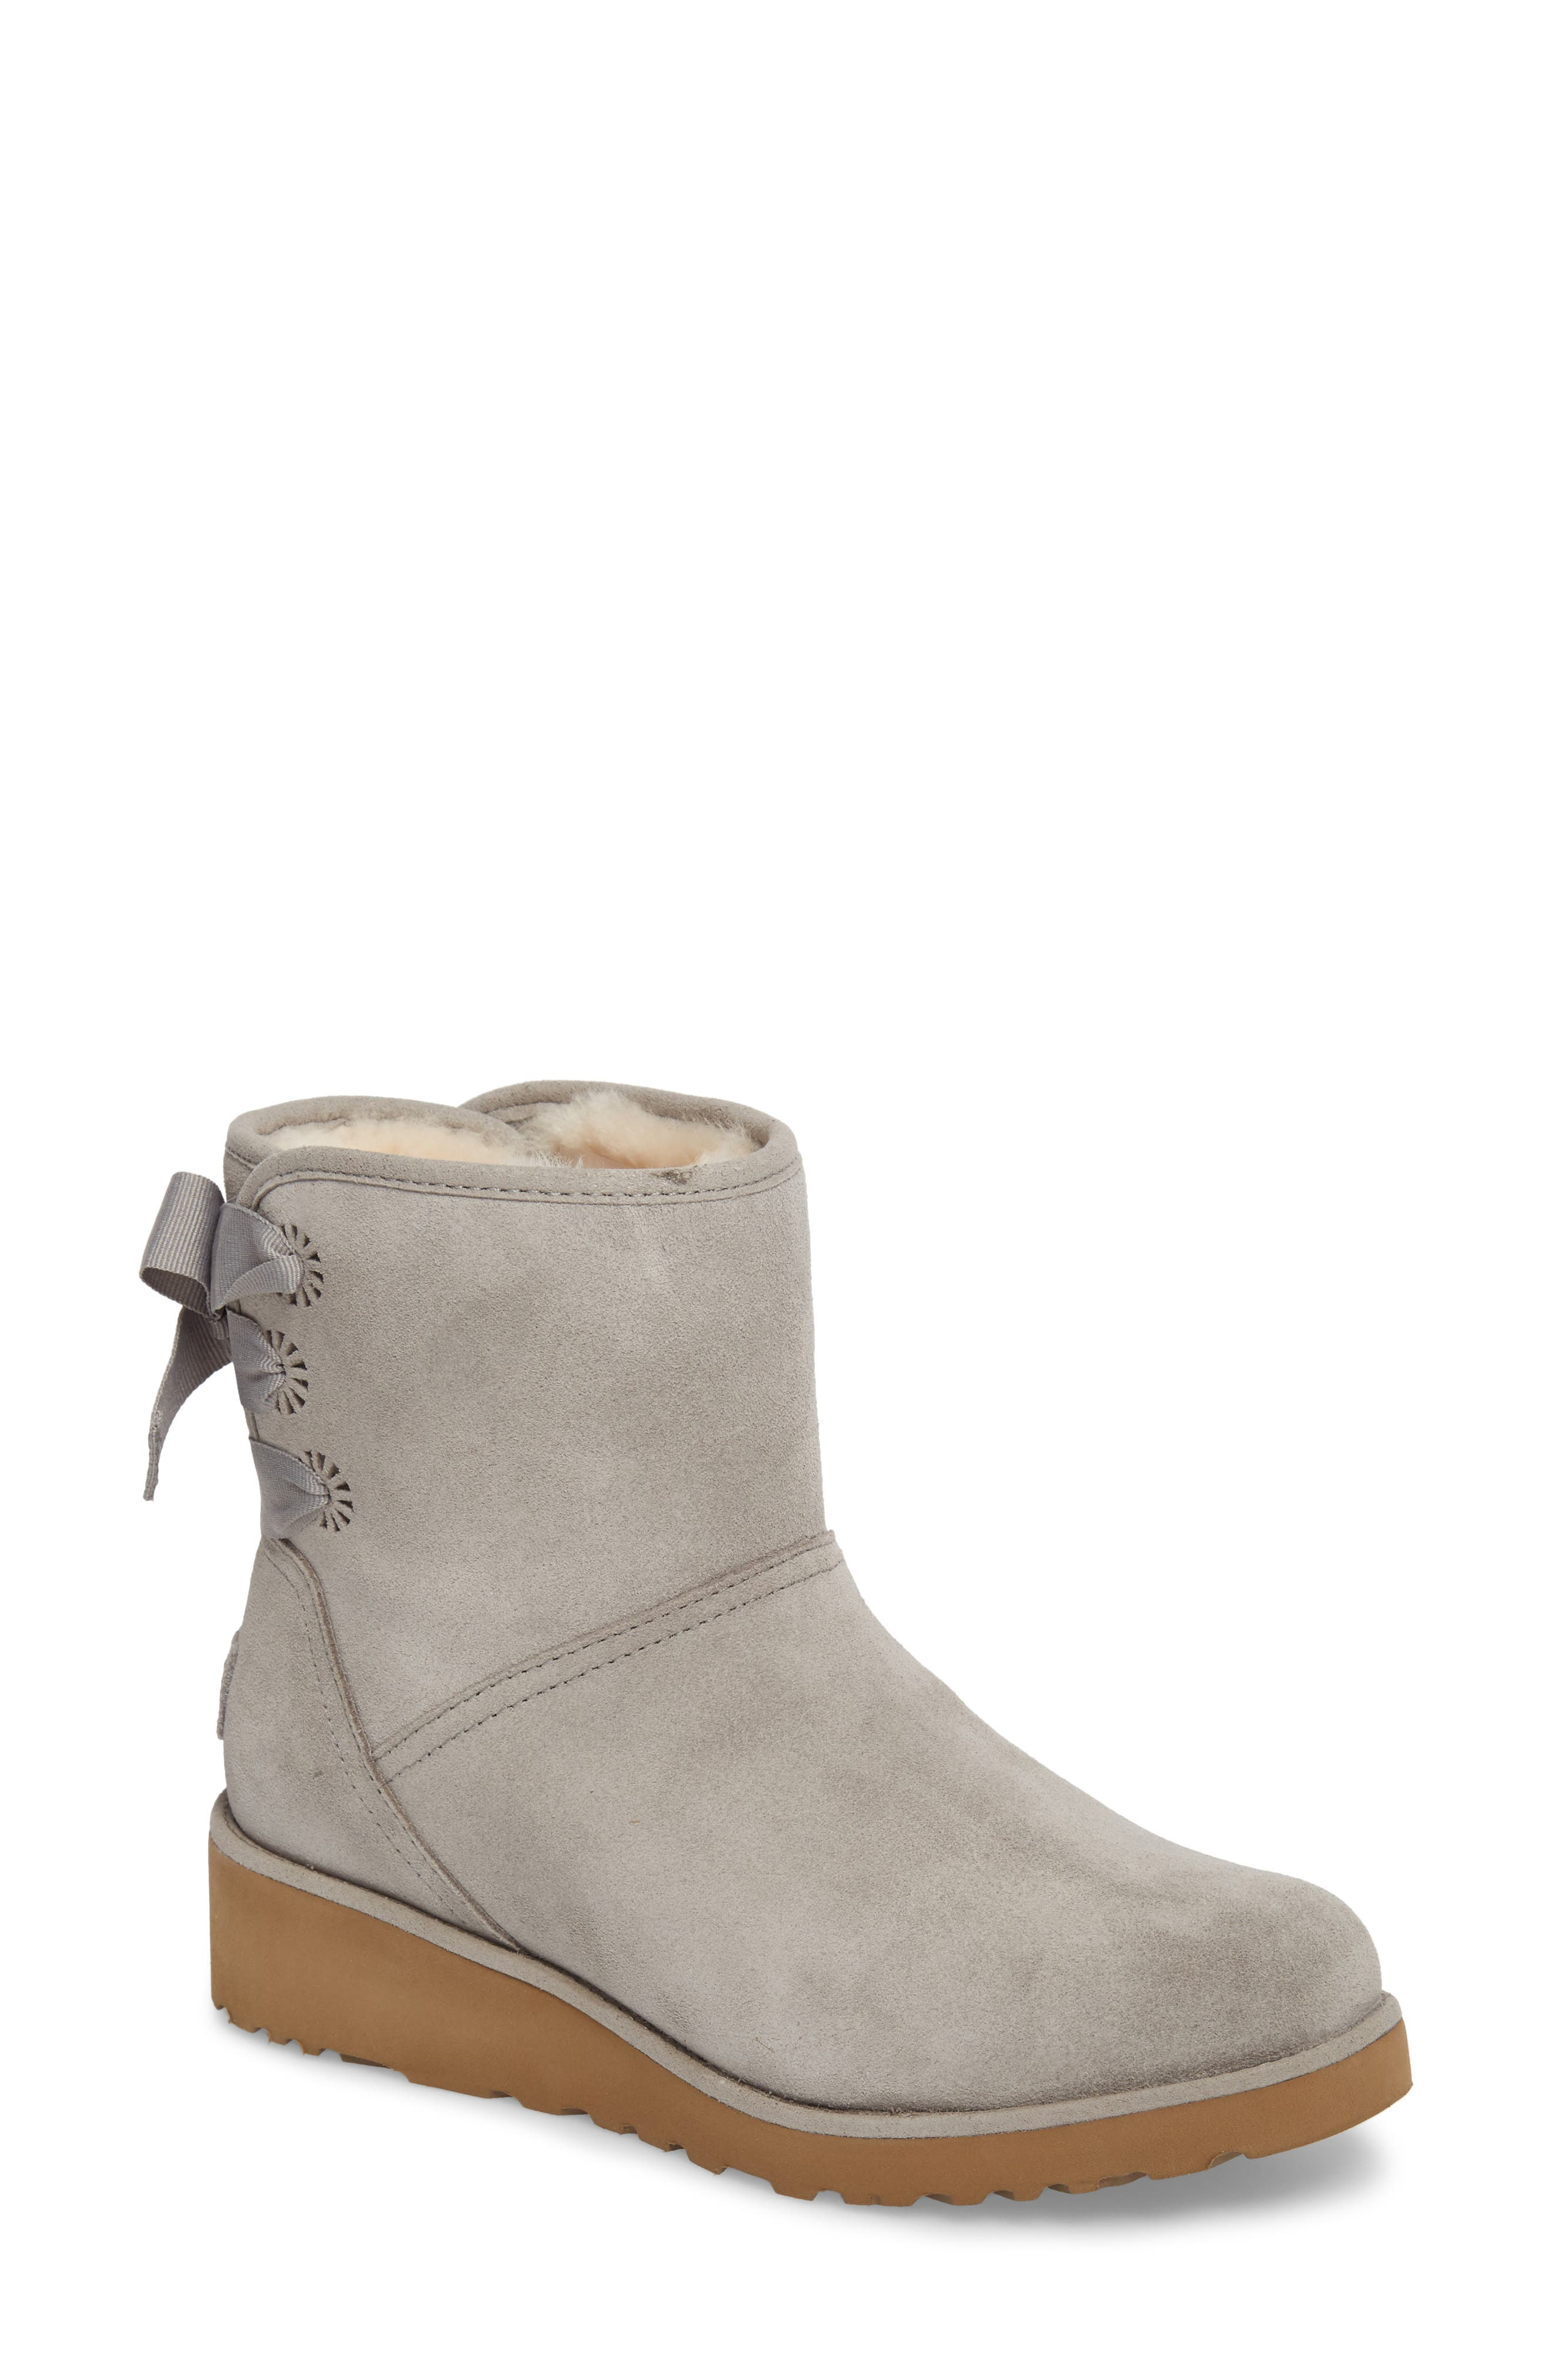 Alternate Image 1 Selected - UGG® Drew Sunshine Perforated Tie Back Boot (Women)